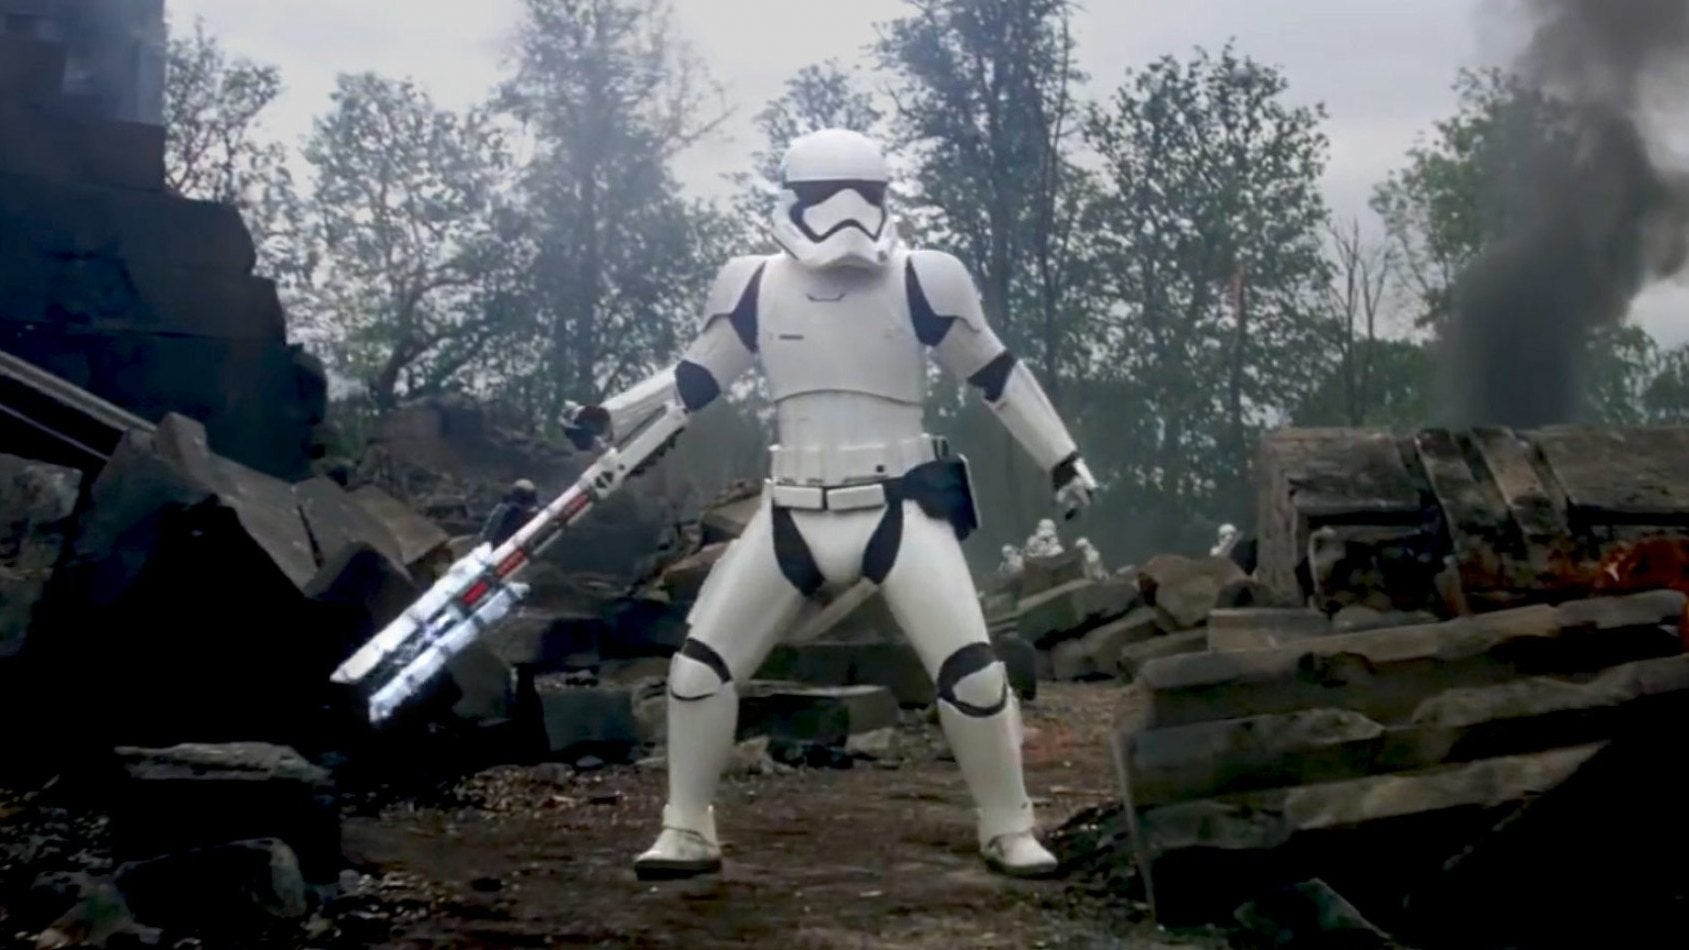 Sam Witwer Shares What Makes First Order Stormtroopers So Different: They Yell A Lot